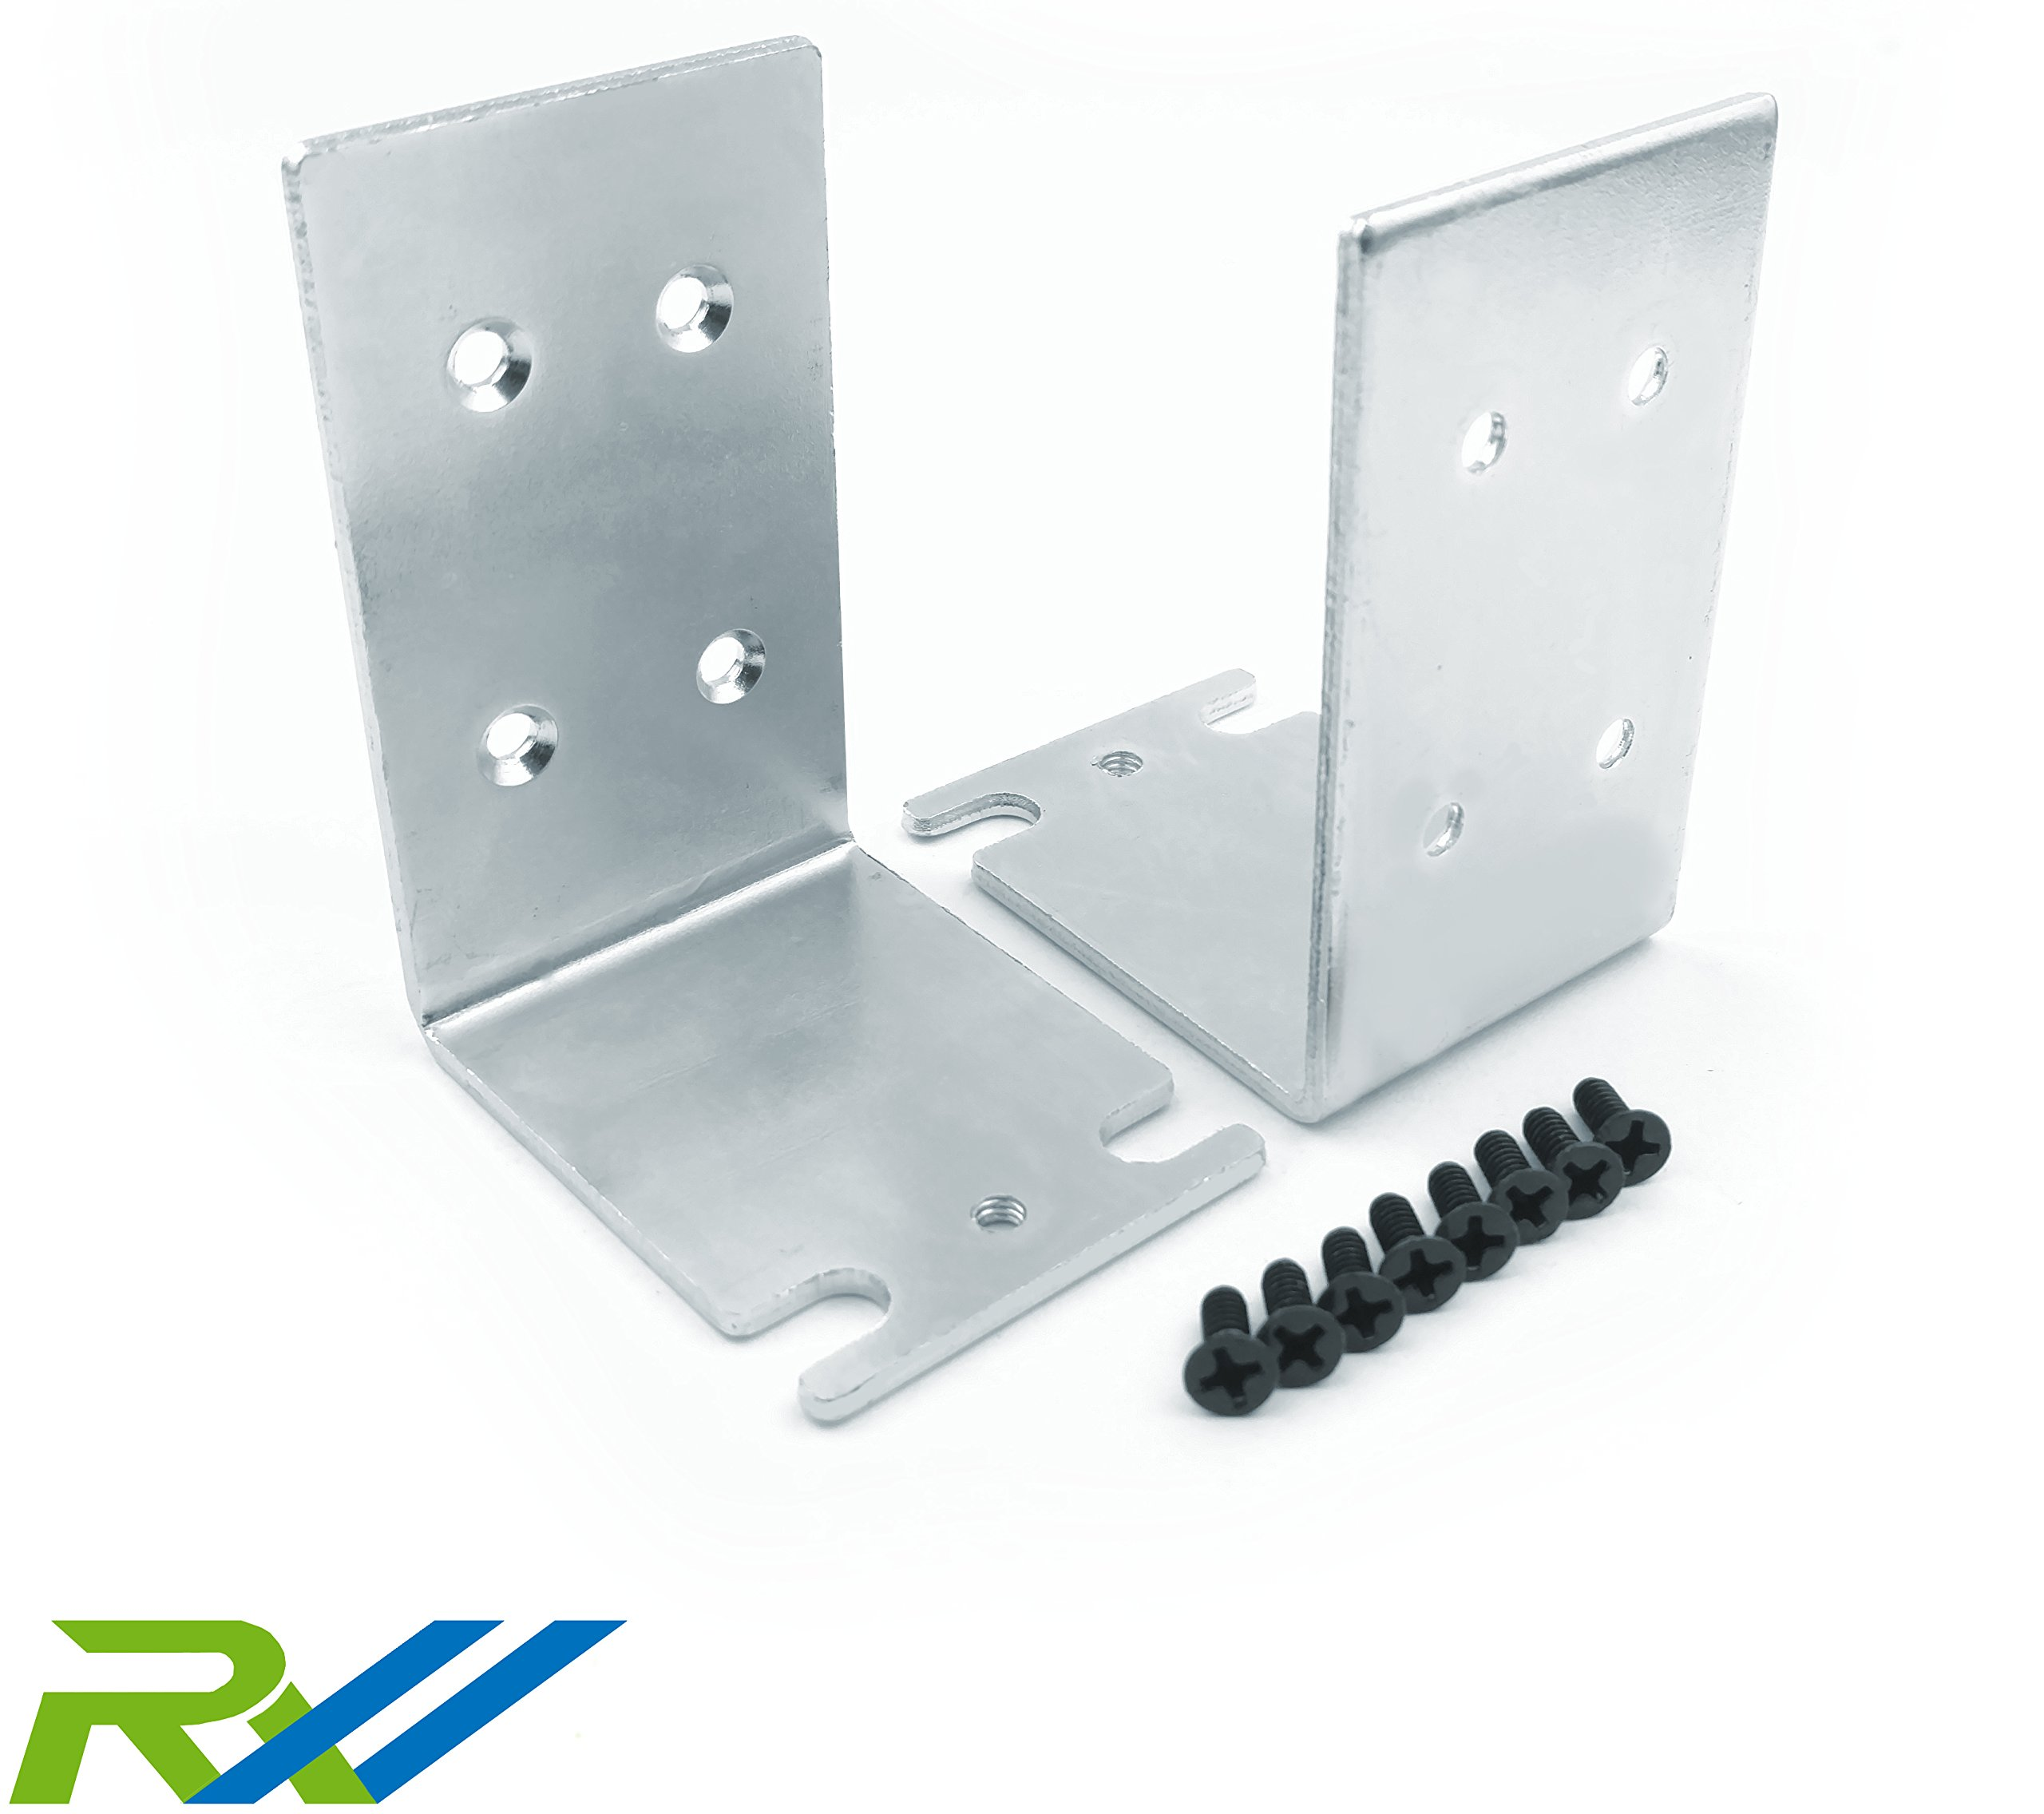 """19/"""" Rack Mount Kit for Cisco 4000 ISR Series Routers ACS-4430-RM-19"""